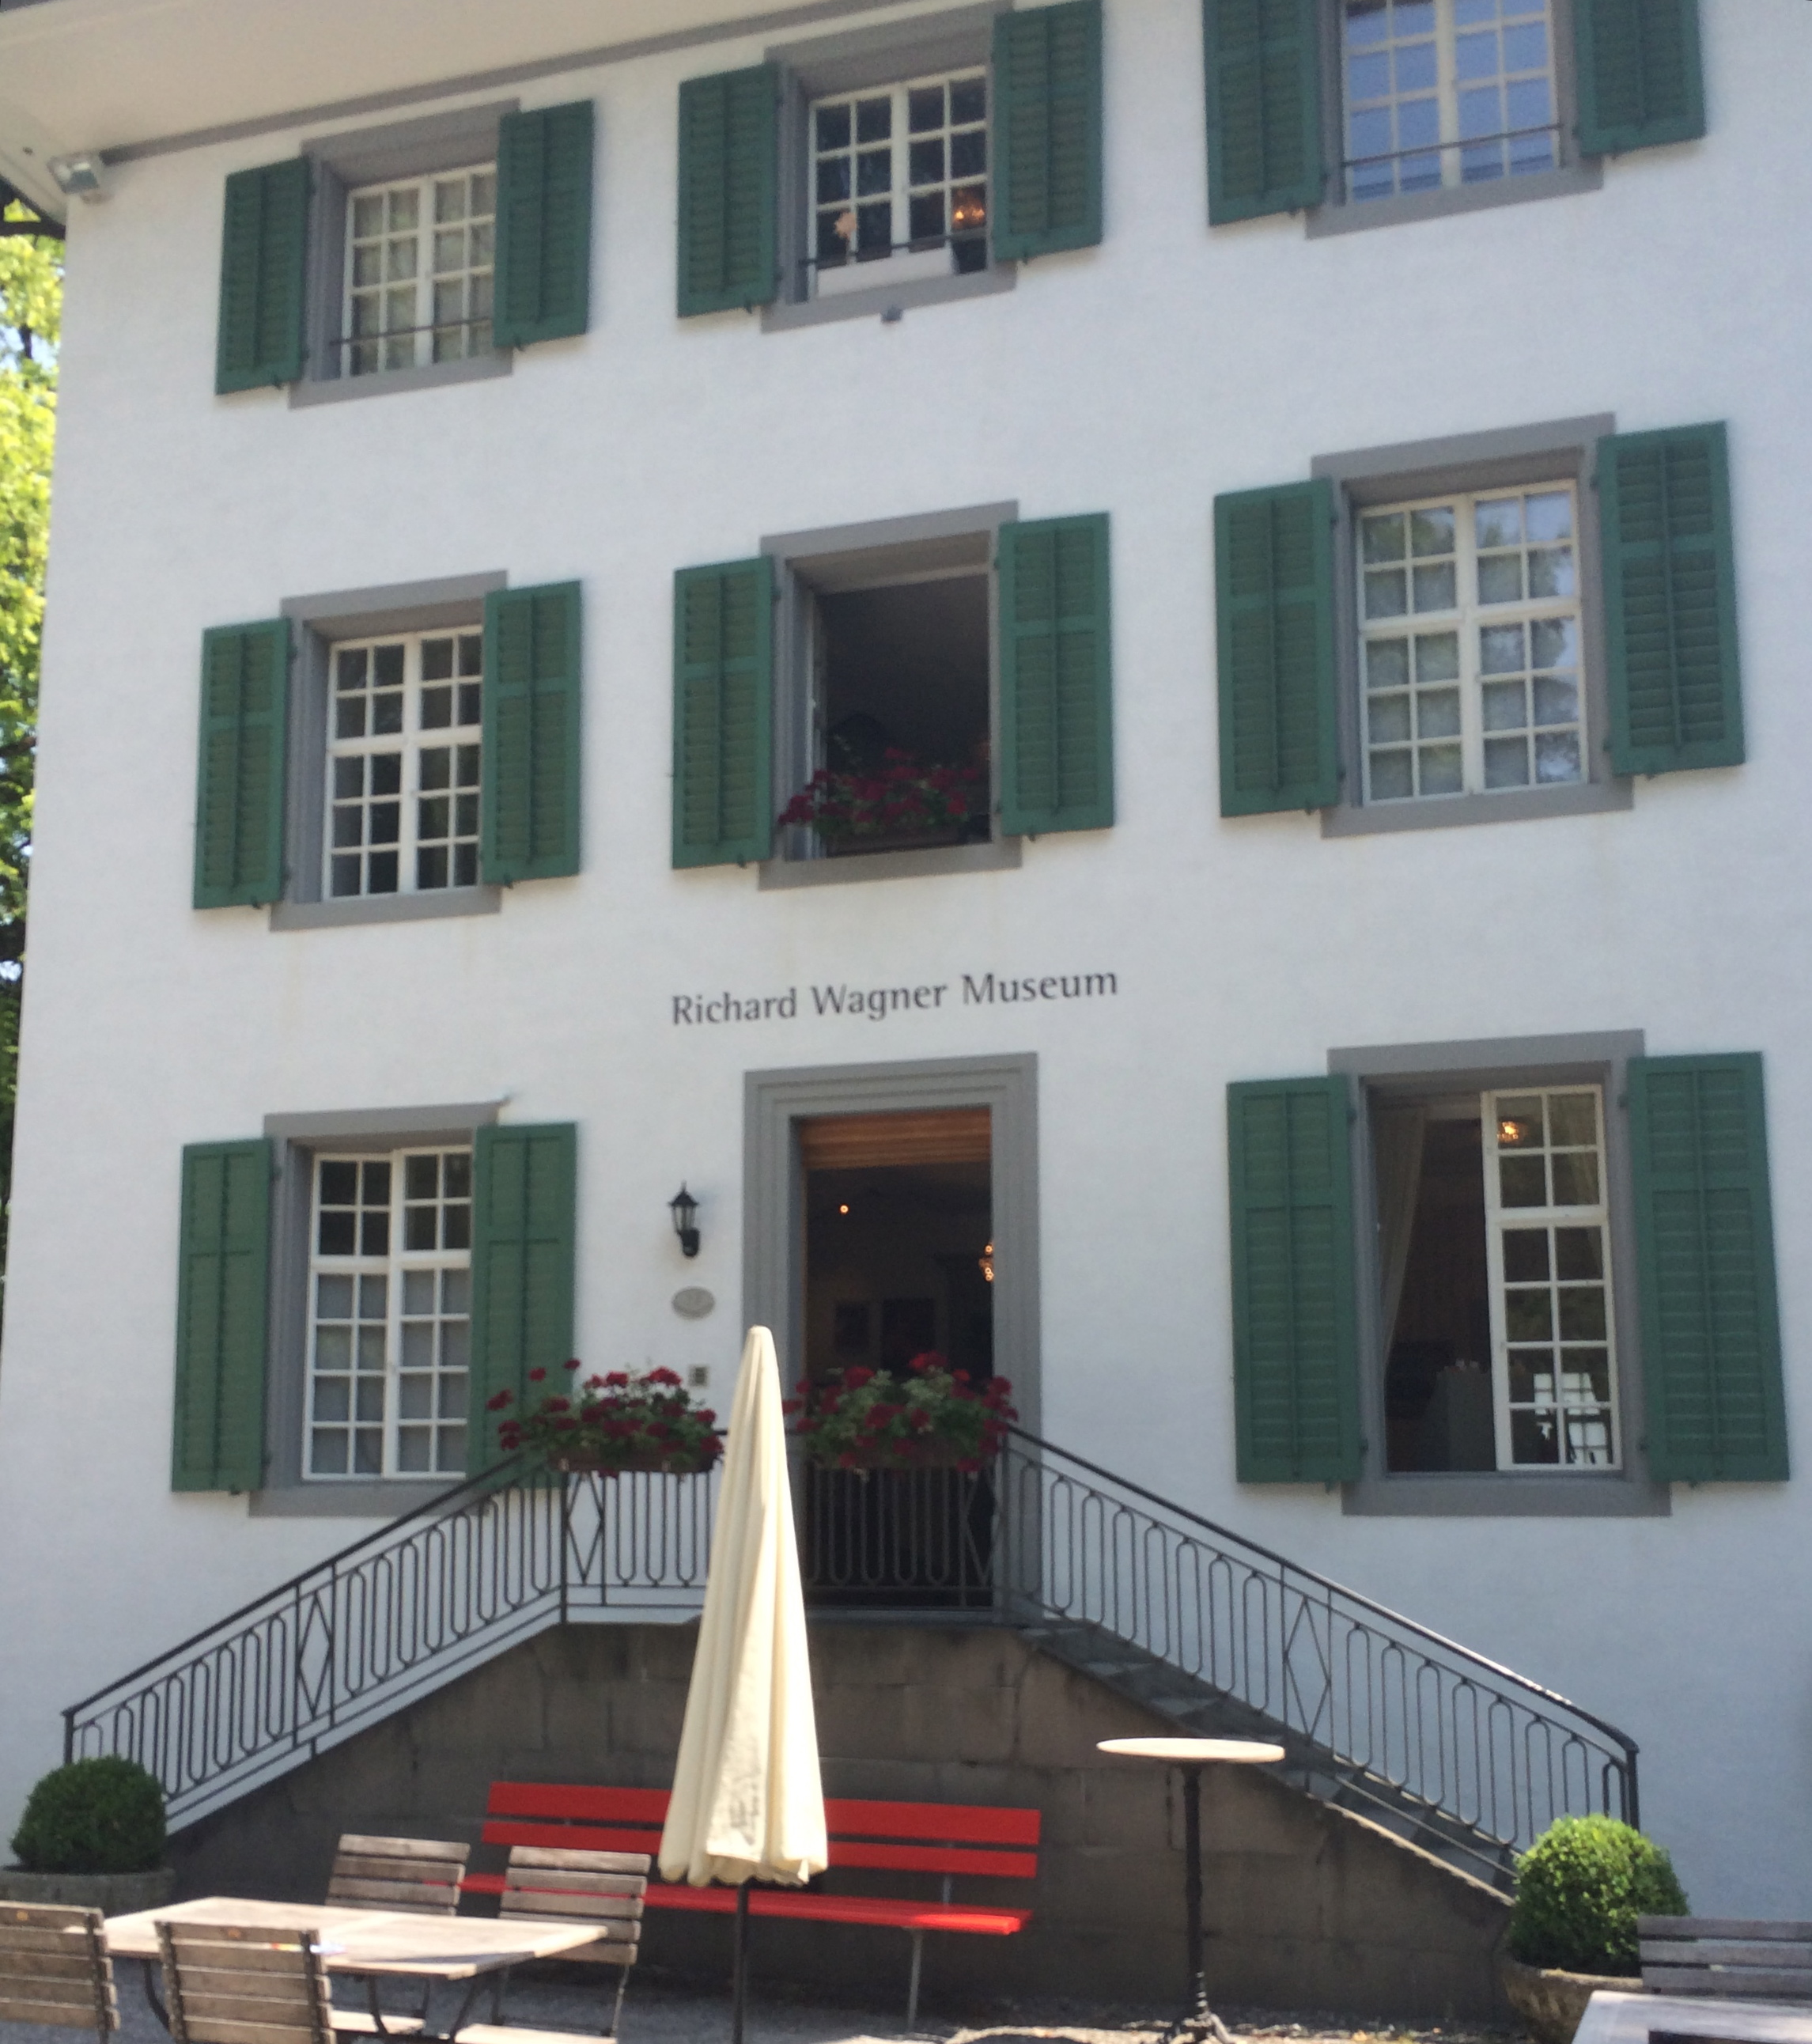 Tribschen in Lucerne, where Wagner lived with Cosima and composed the Ring Cycle.